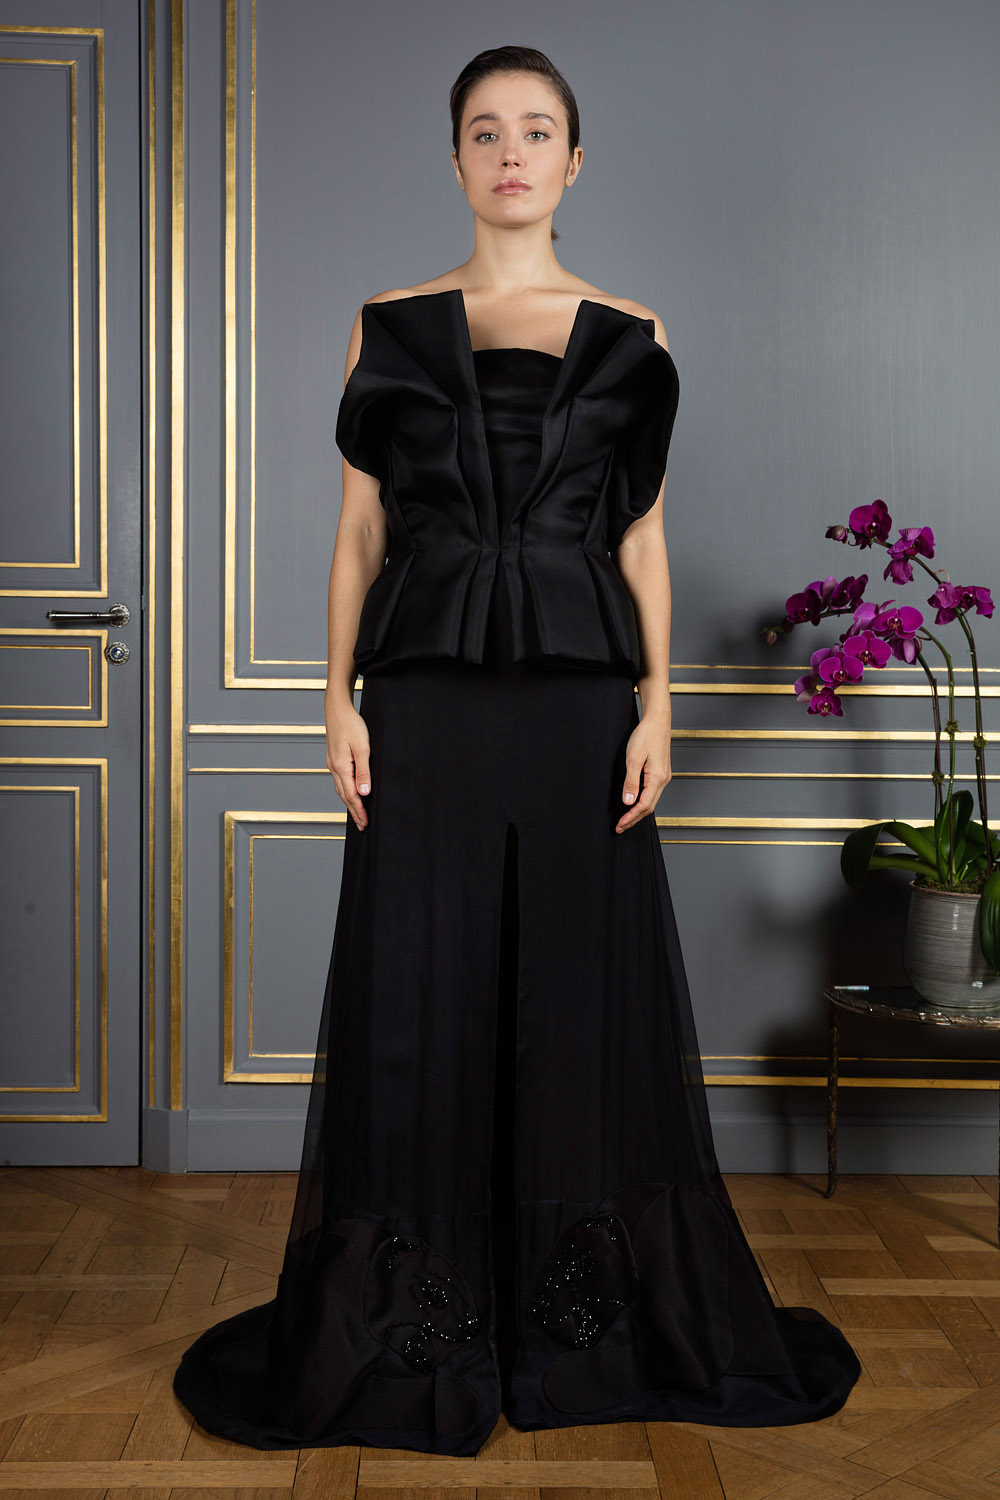 Black strapless gown